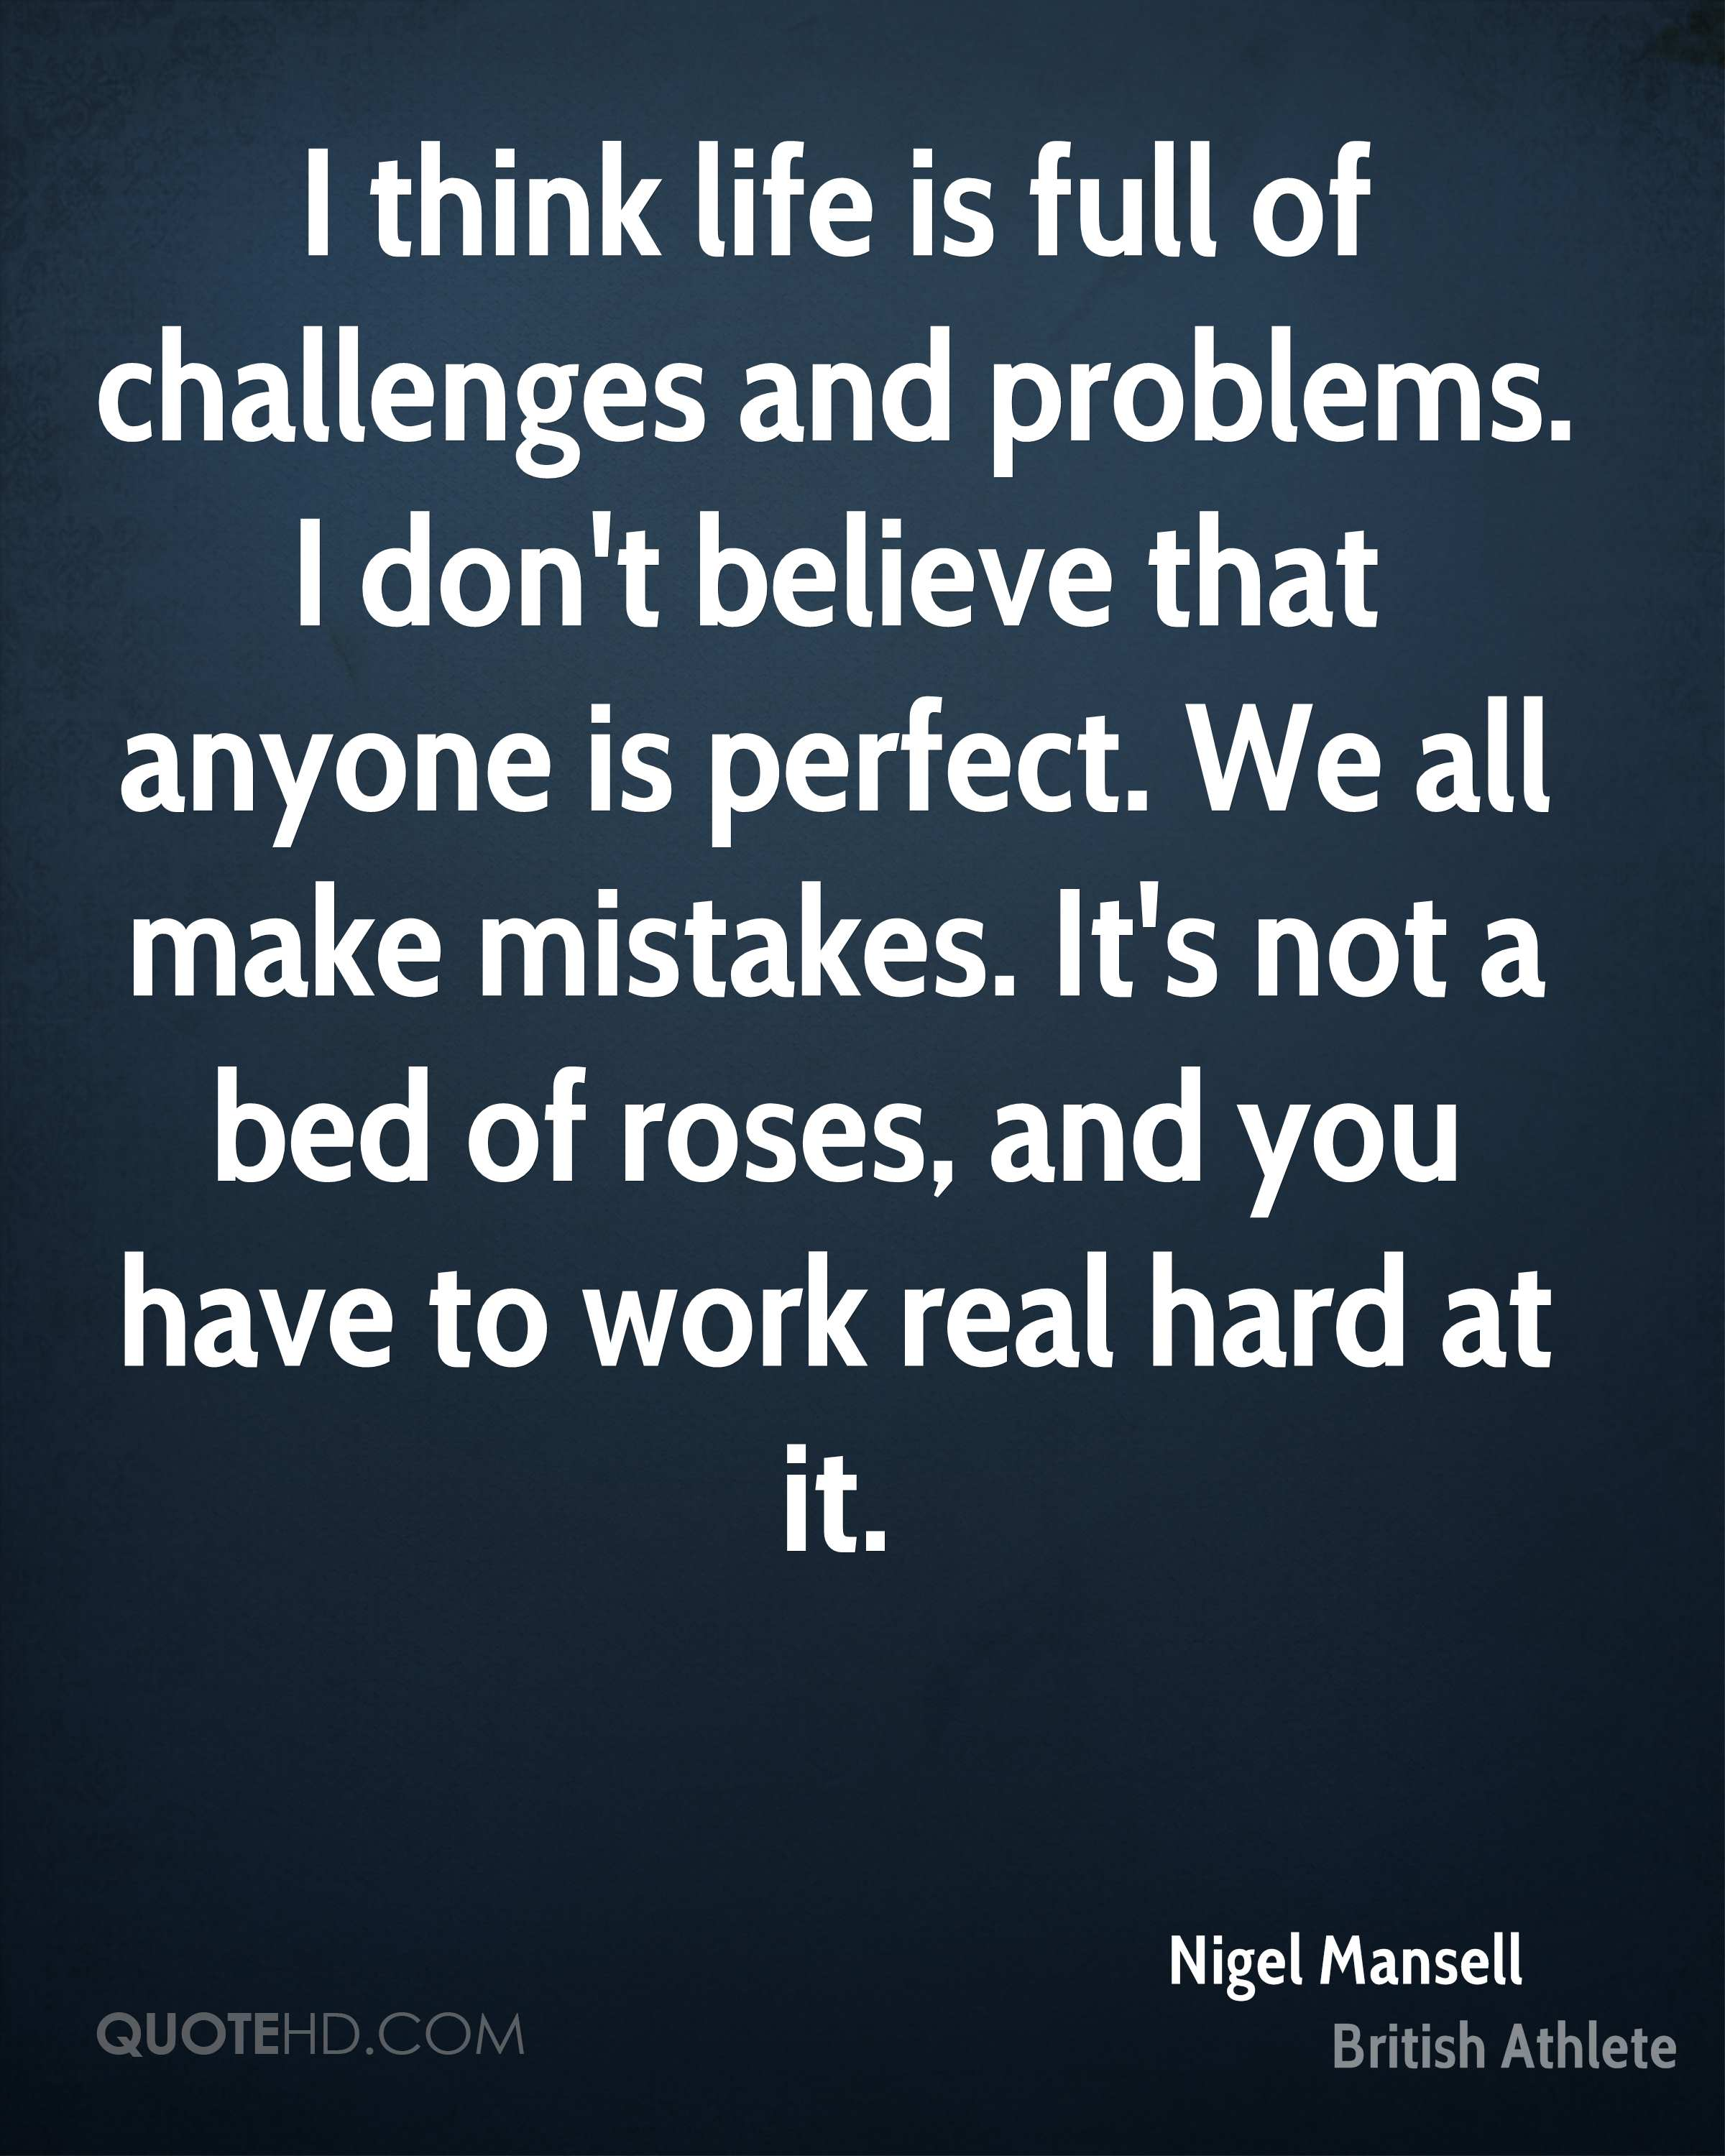 I think life is full of challenges and problems. I don't believe that anyone is perfect. We all make mistakes. It's not a bed of roses, and you have to work real hard at it.